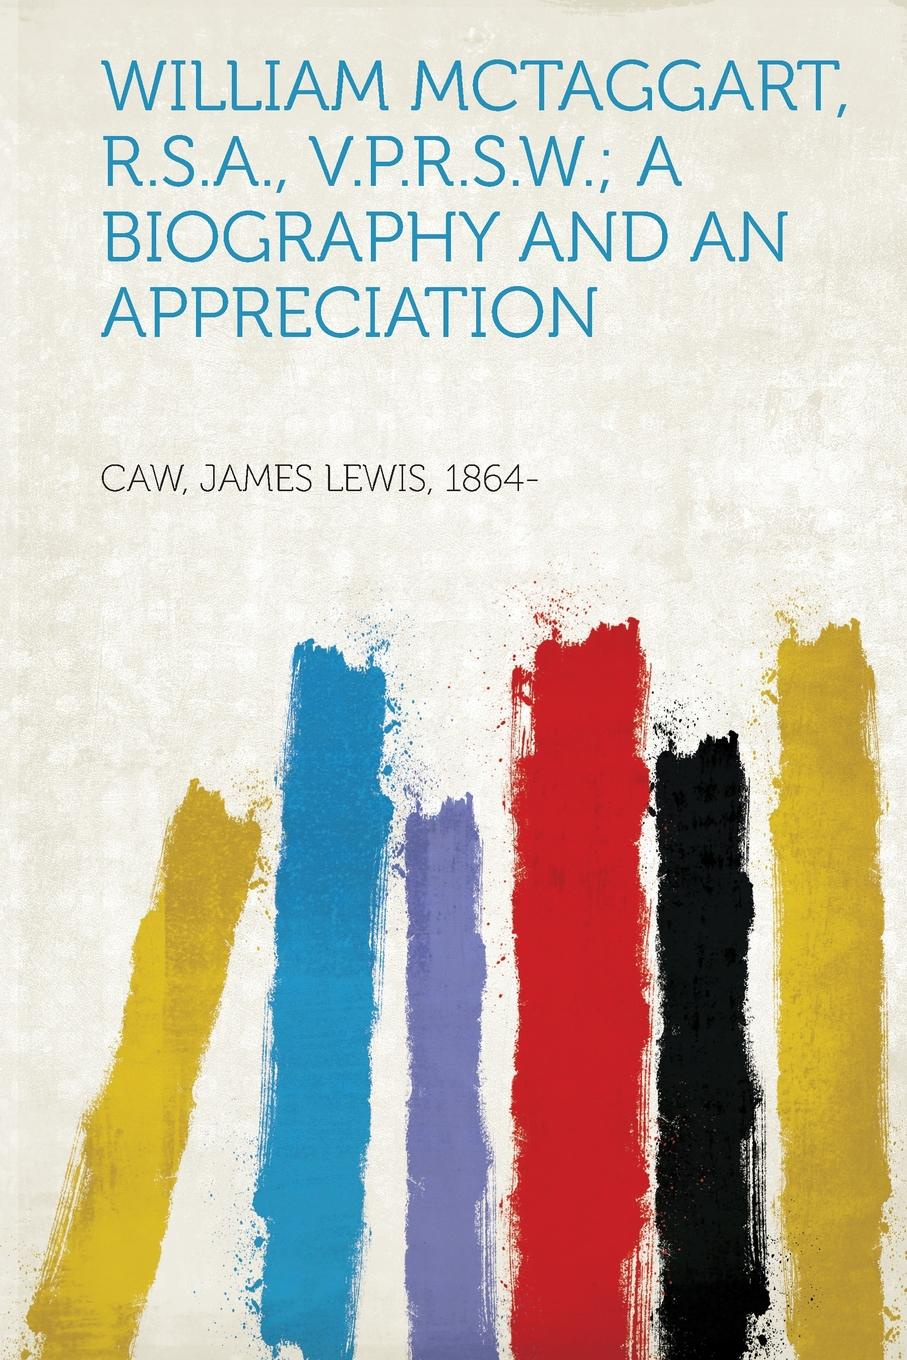 William McTaggart, R.S.A., V.P.R.S.W.; A Biography and an Appreciation